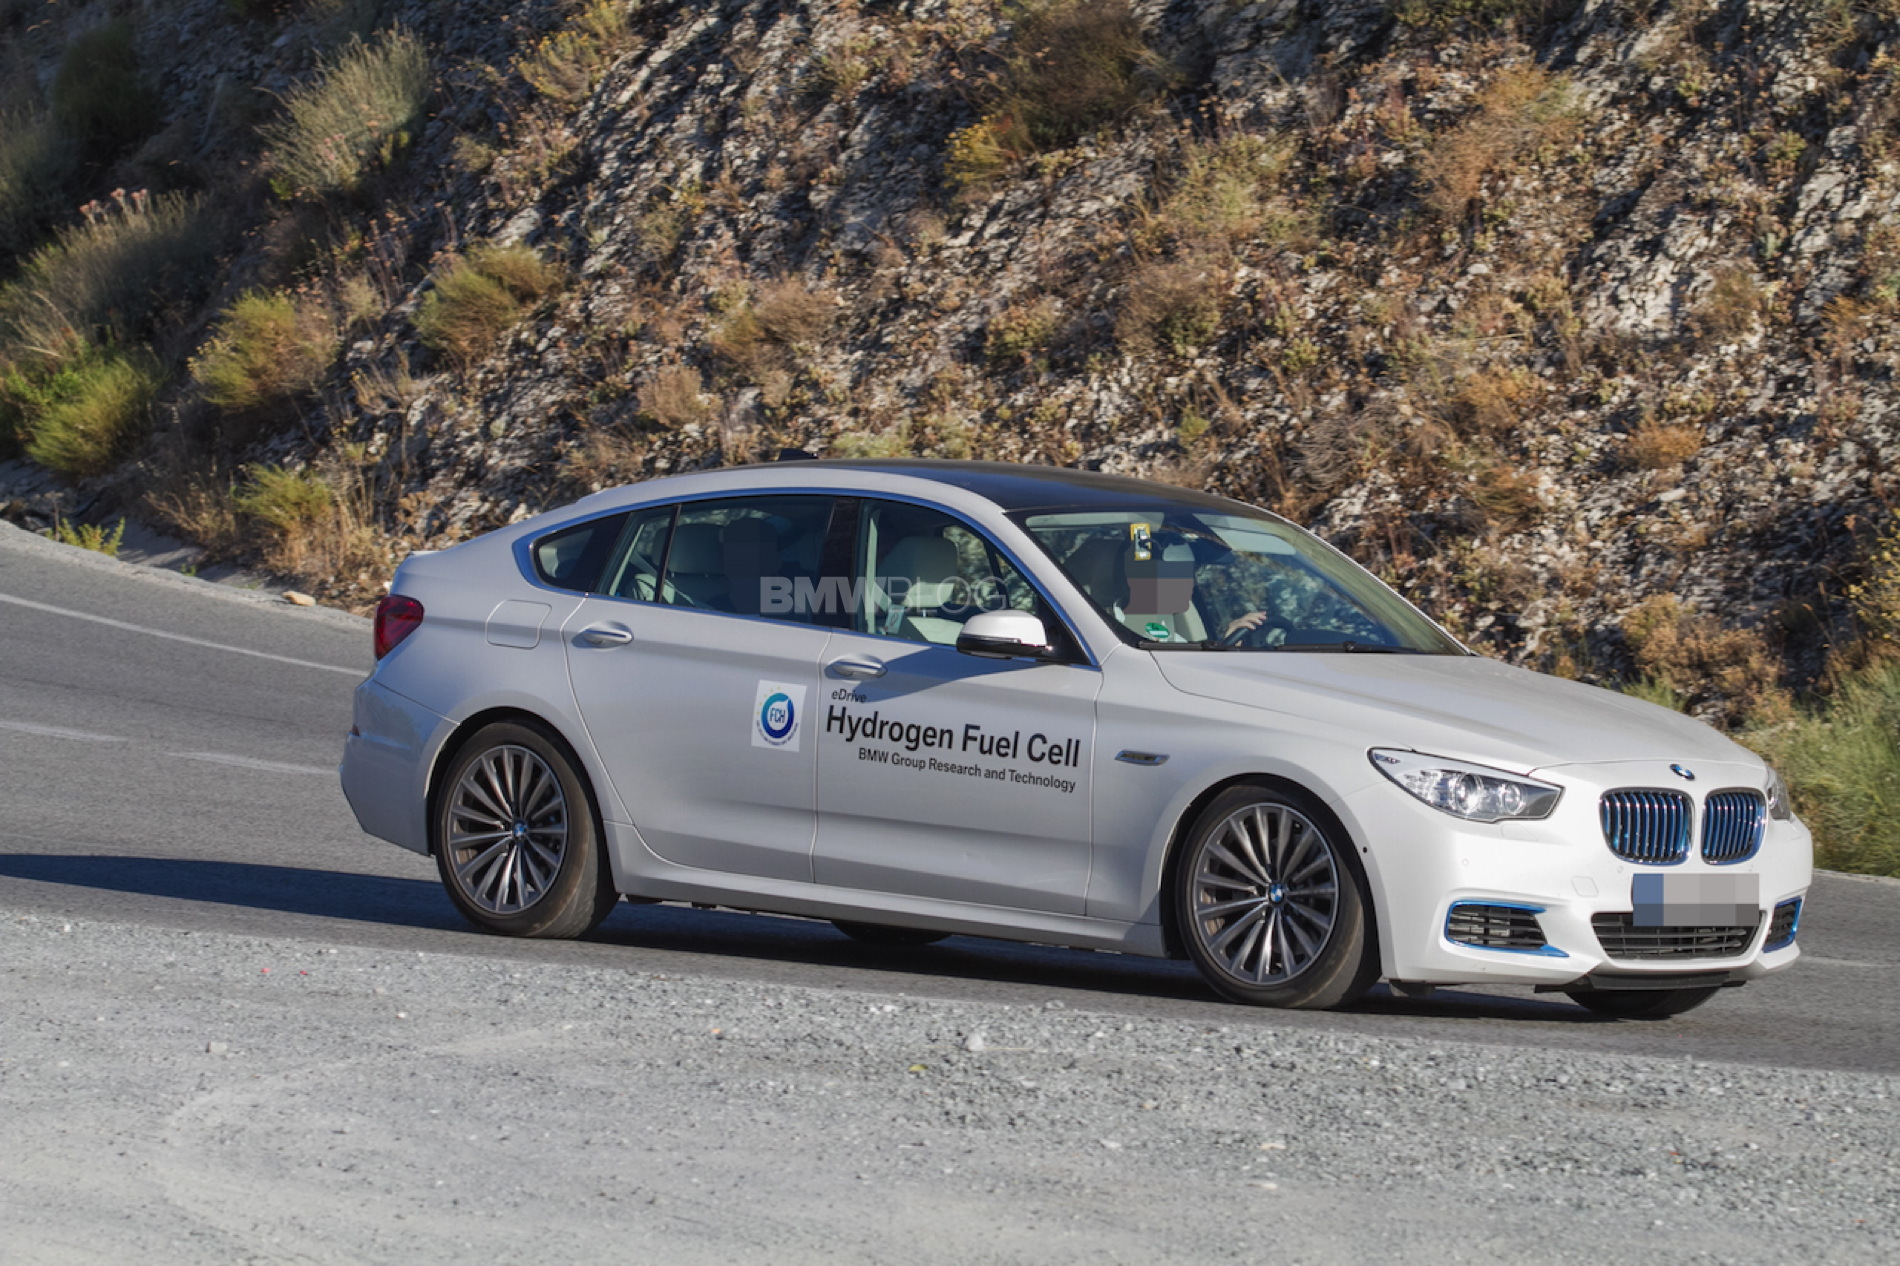 BMW 5 Series GT fuel cell prototype 2